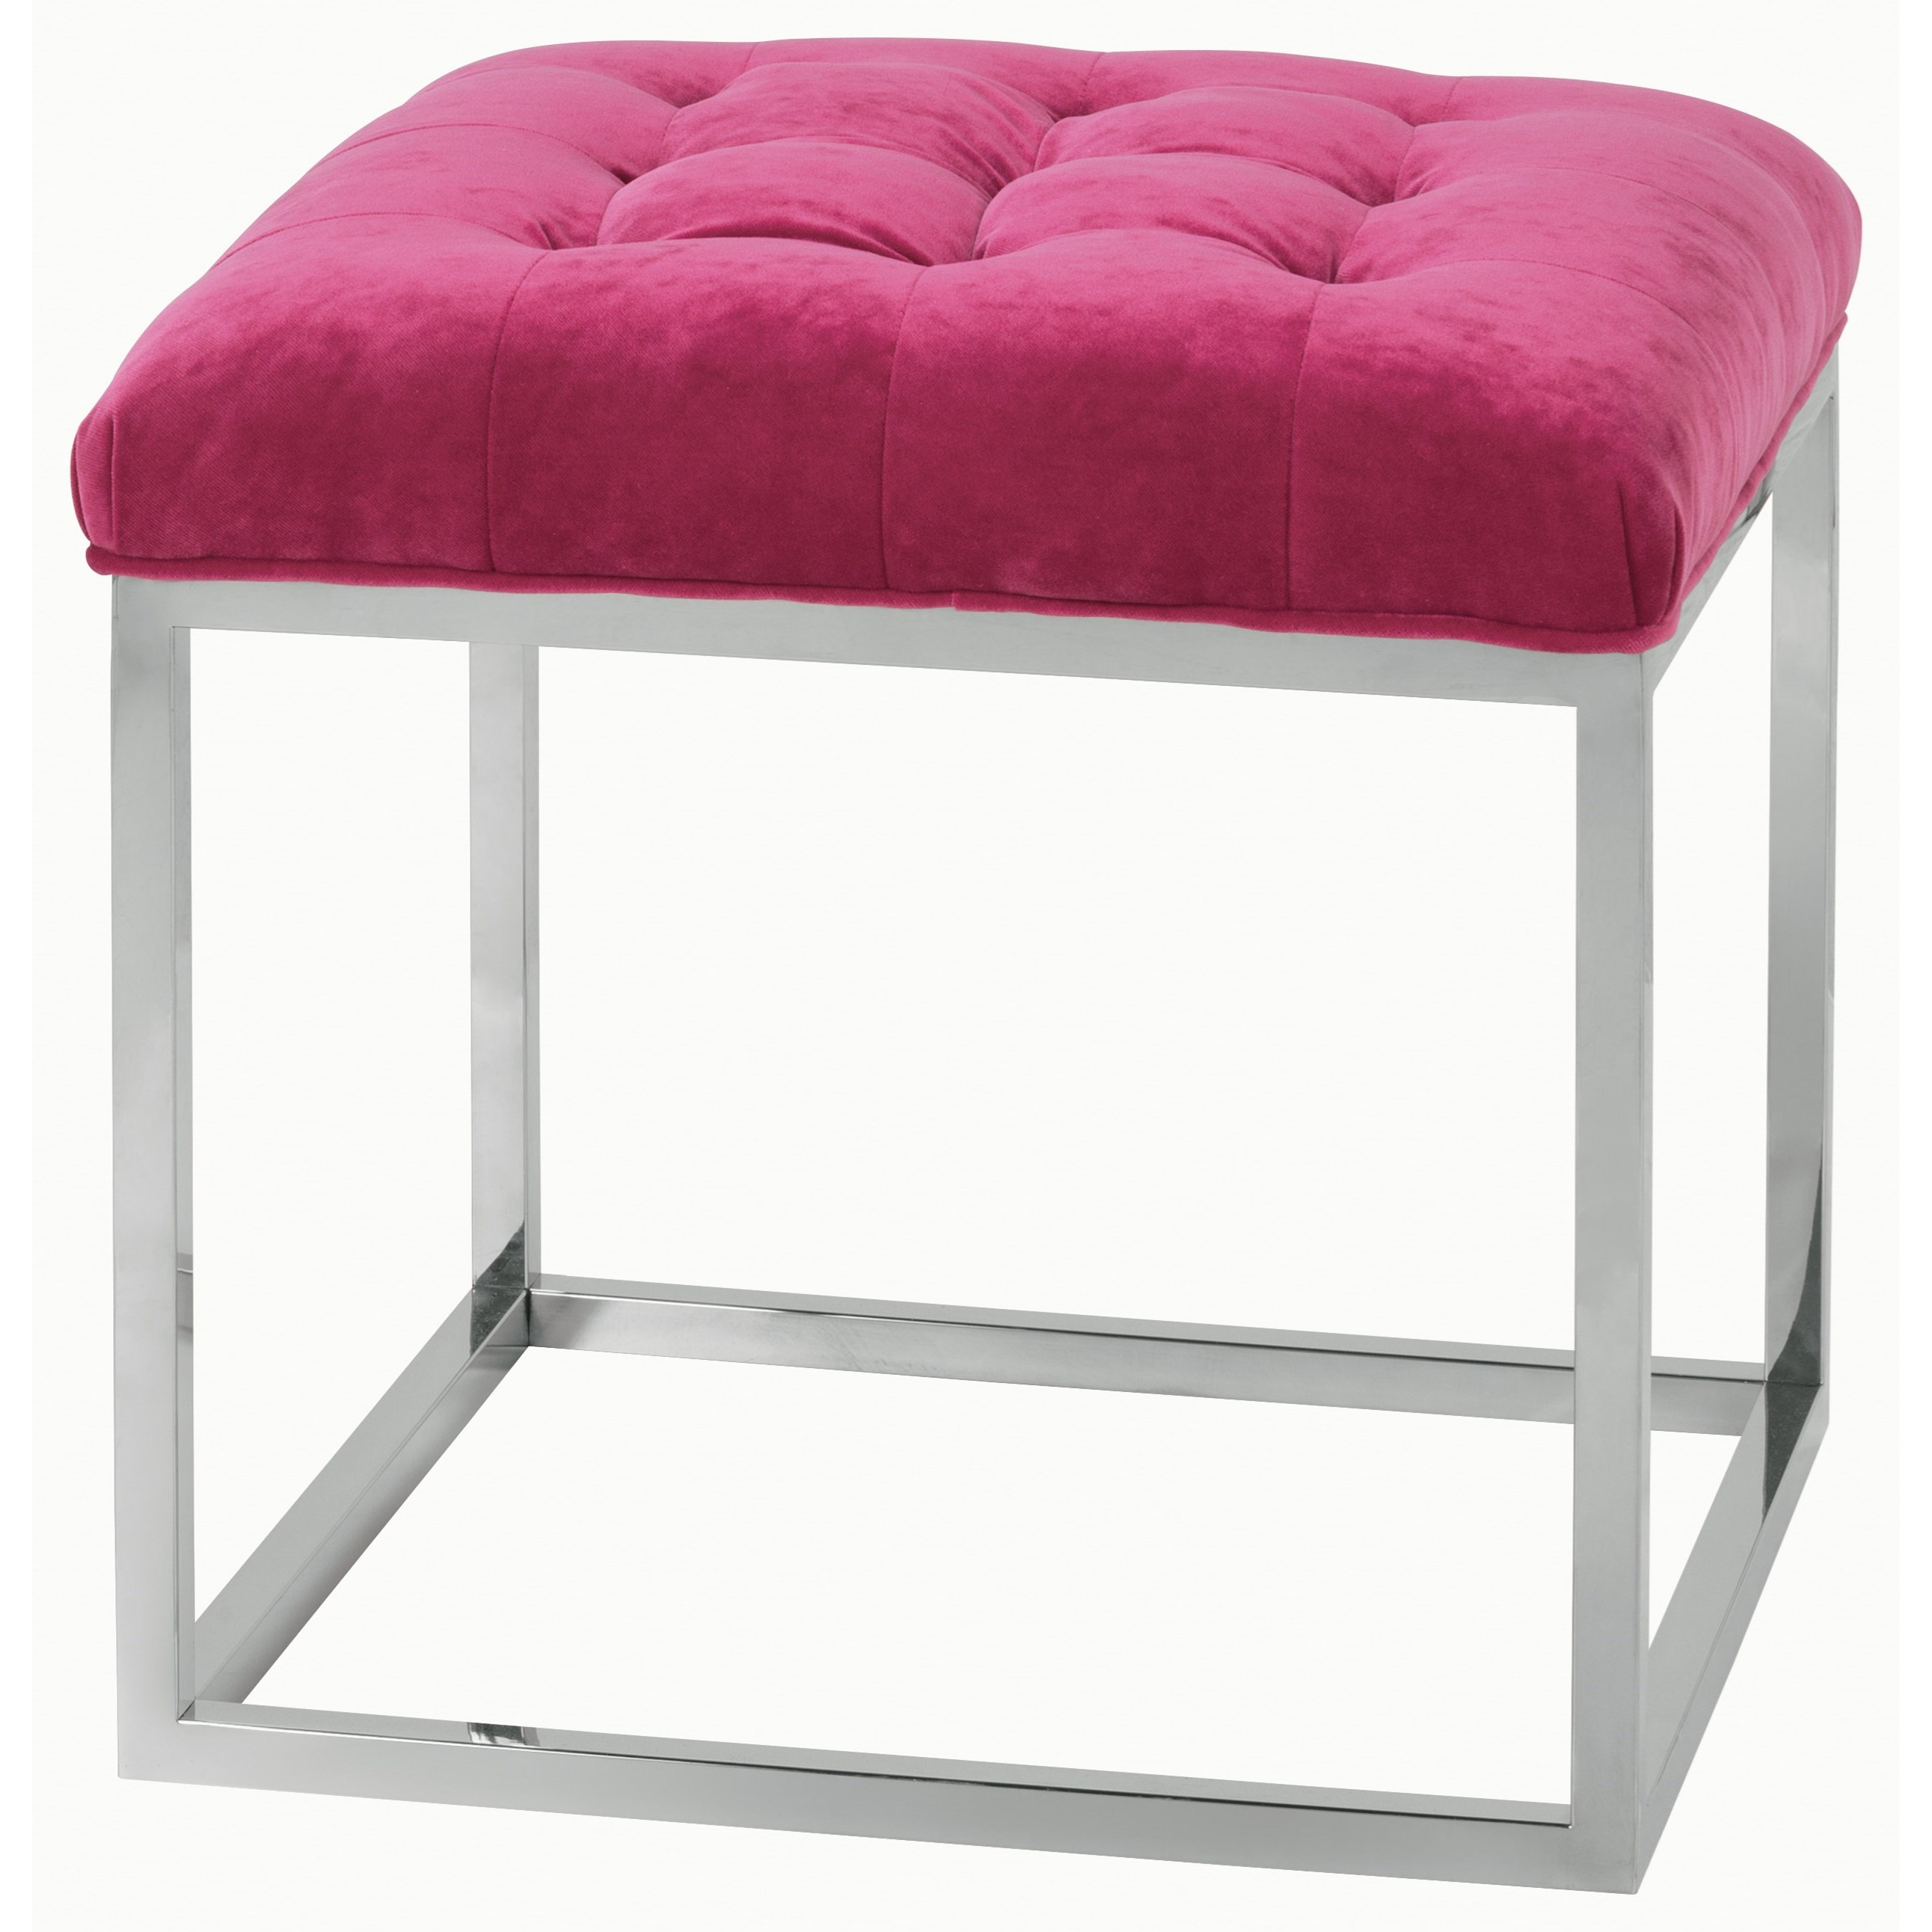 Rowe Gillian Contemporary Cube Ottoman With Tufted Seat